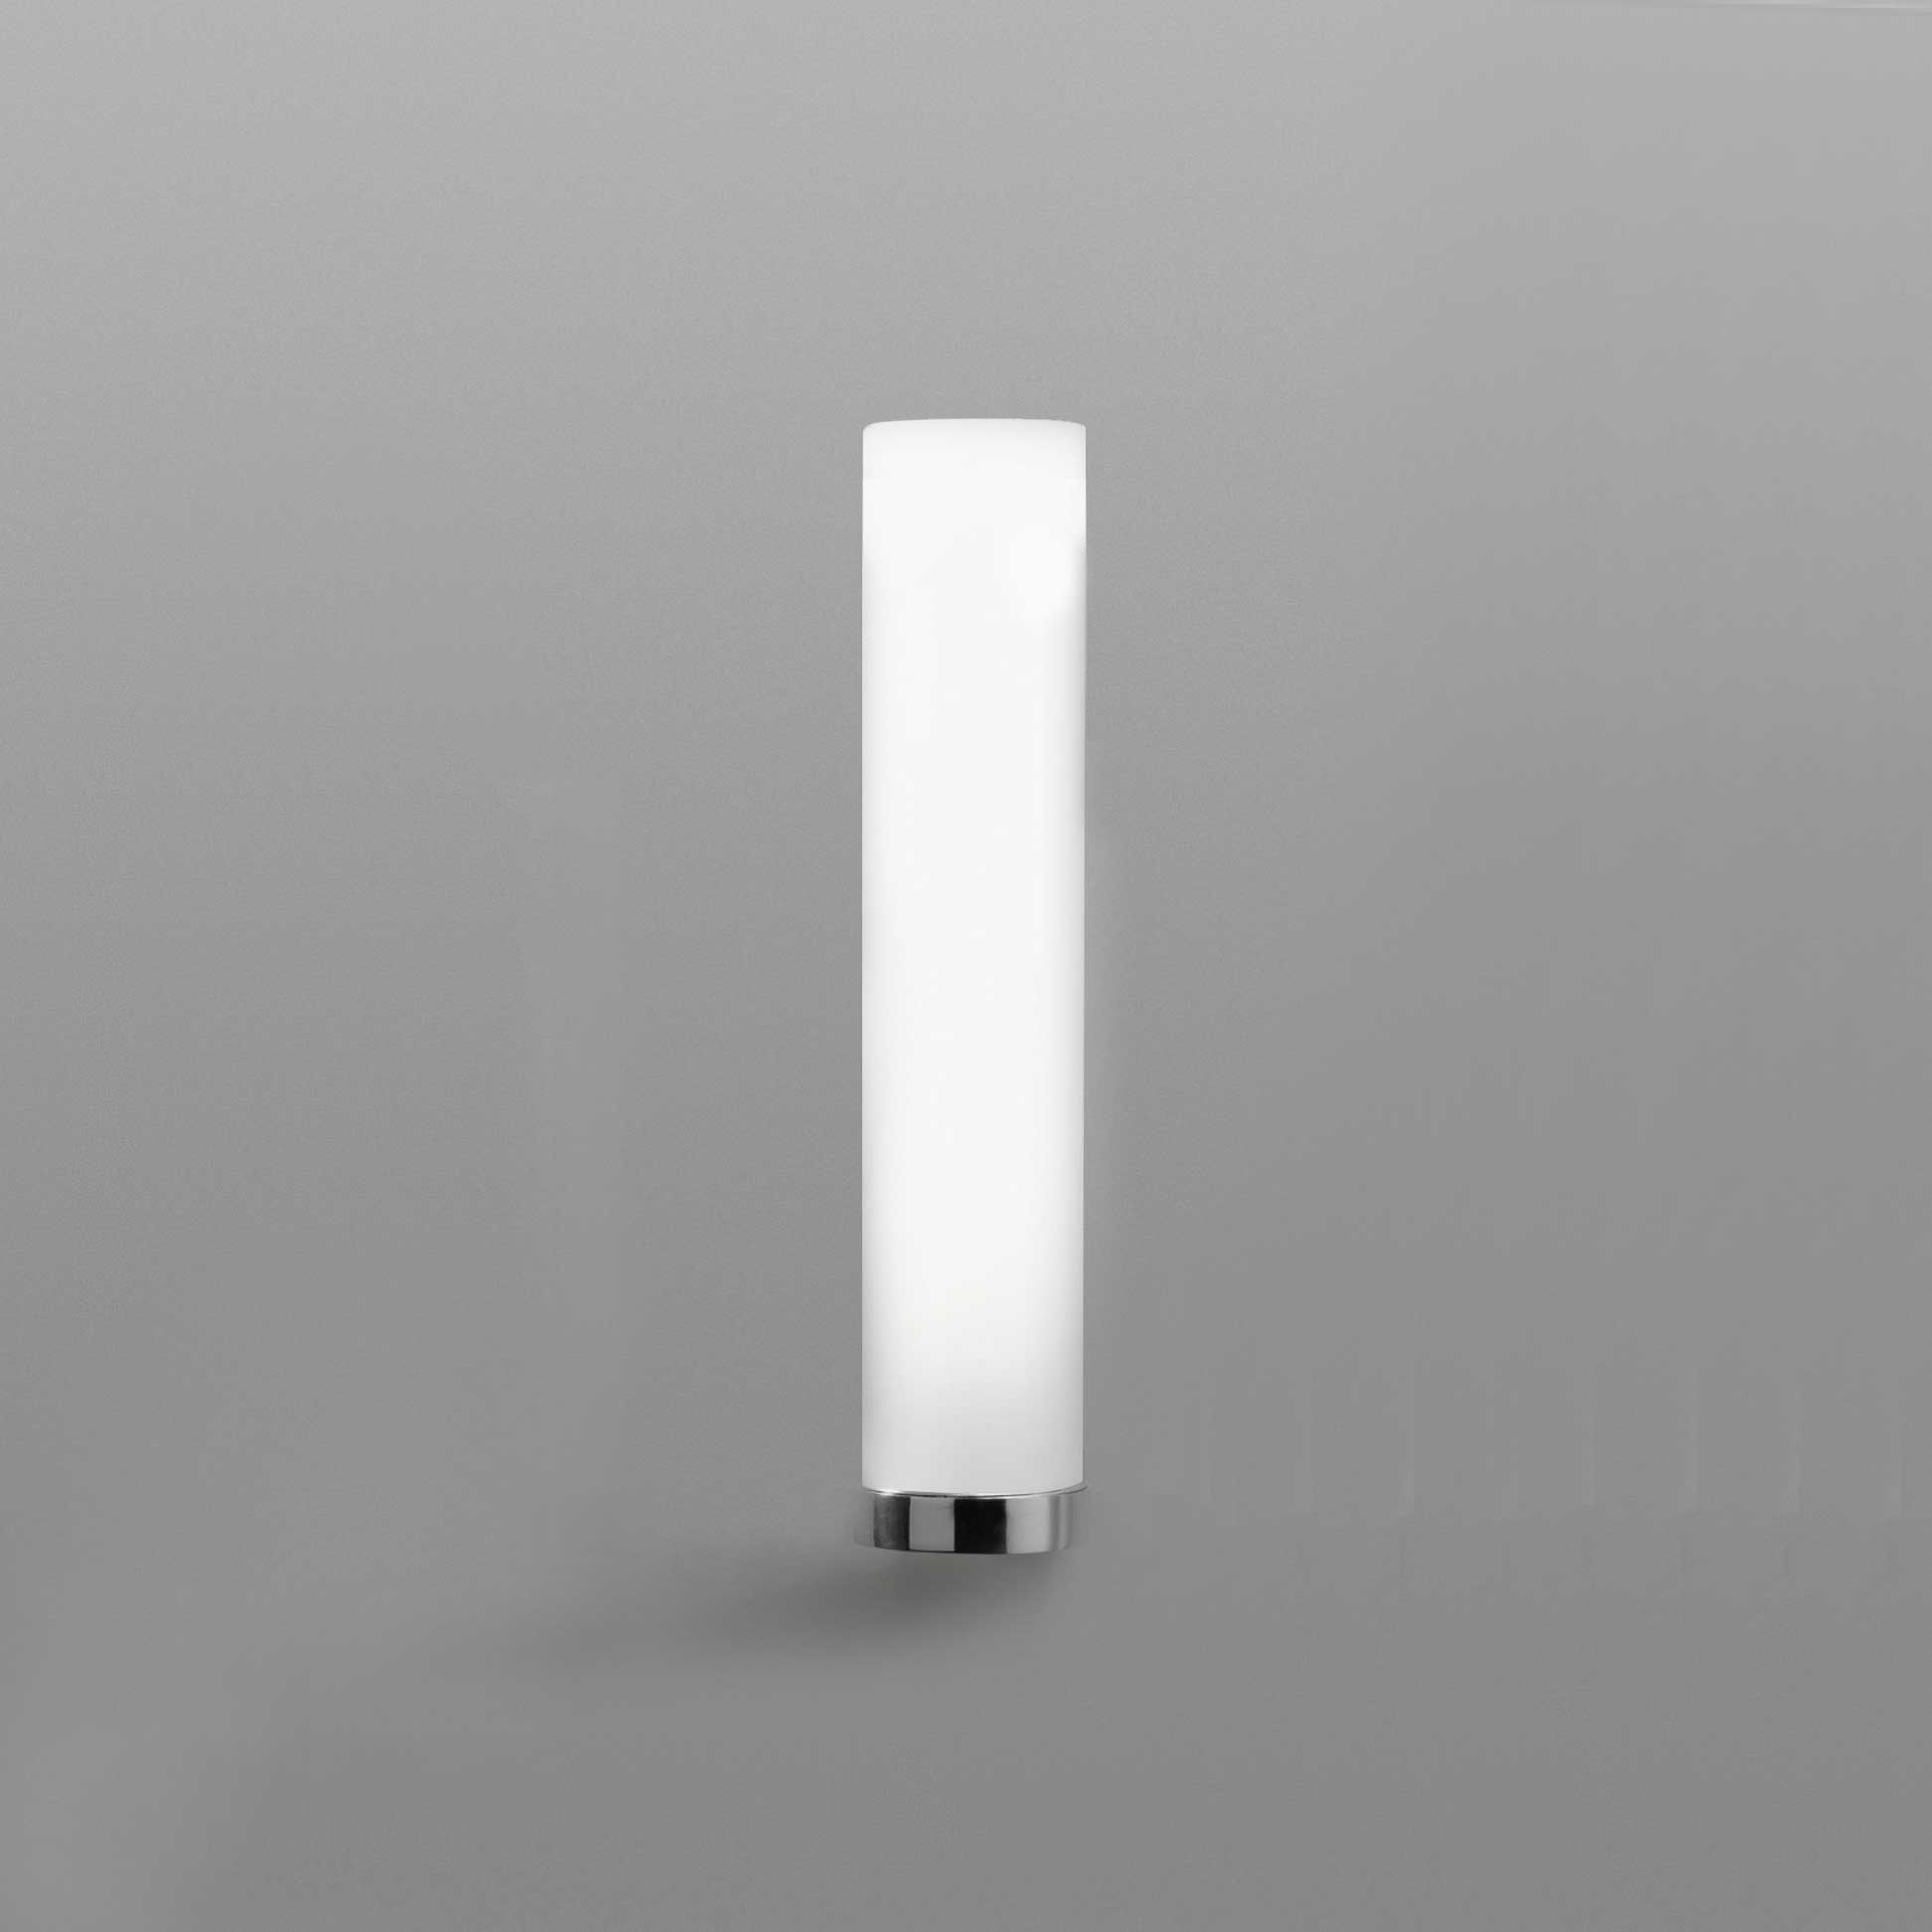 65 cfl ip44 single wall sconce by ai lati lights ll9515 stick 65 cfl ip44 single wall sconce by ai lati lights ll9515 audiocablefo